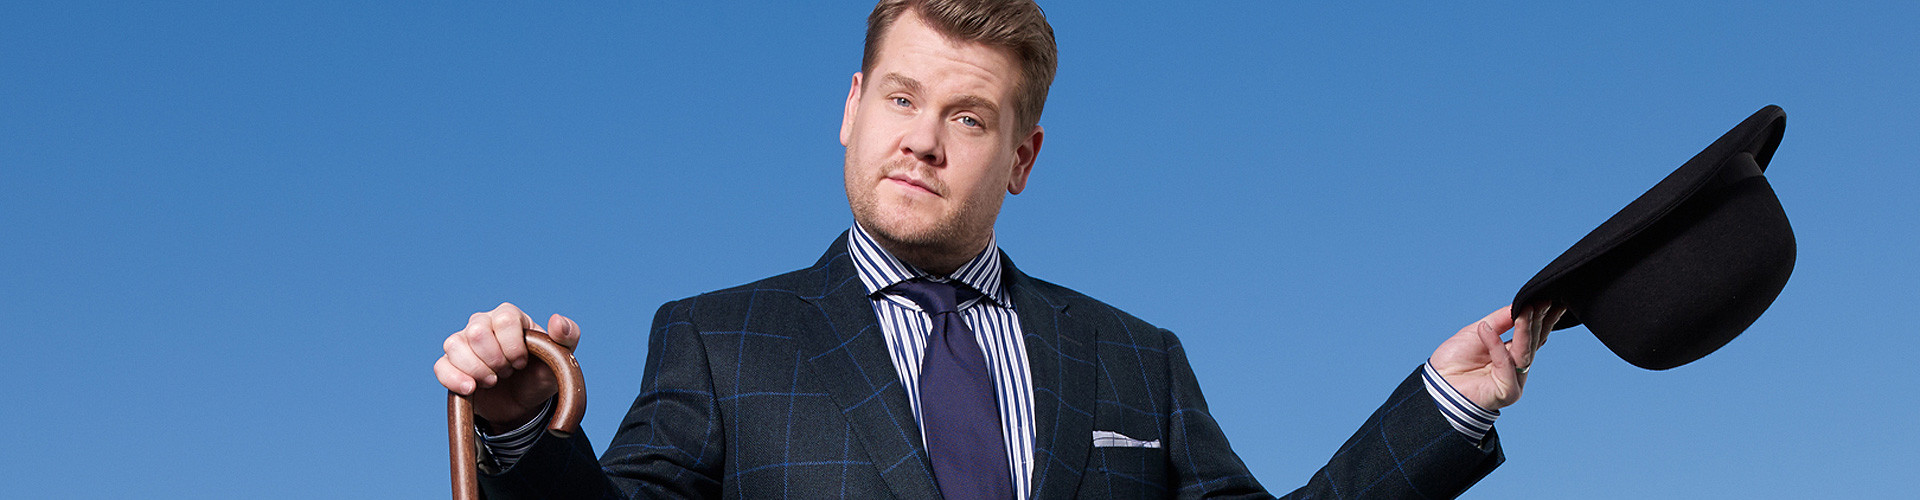 22a-tv-latelateshow-banner-1920x520.jpg